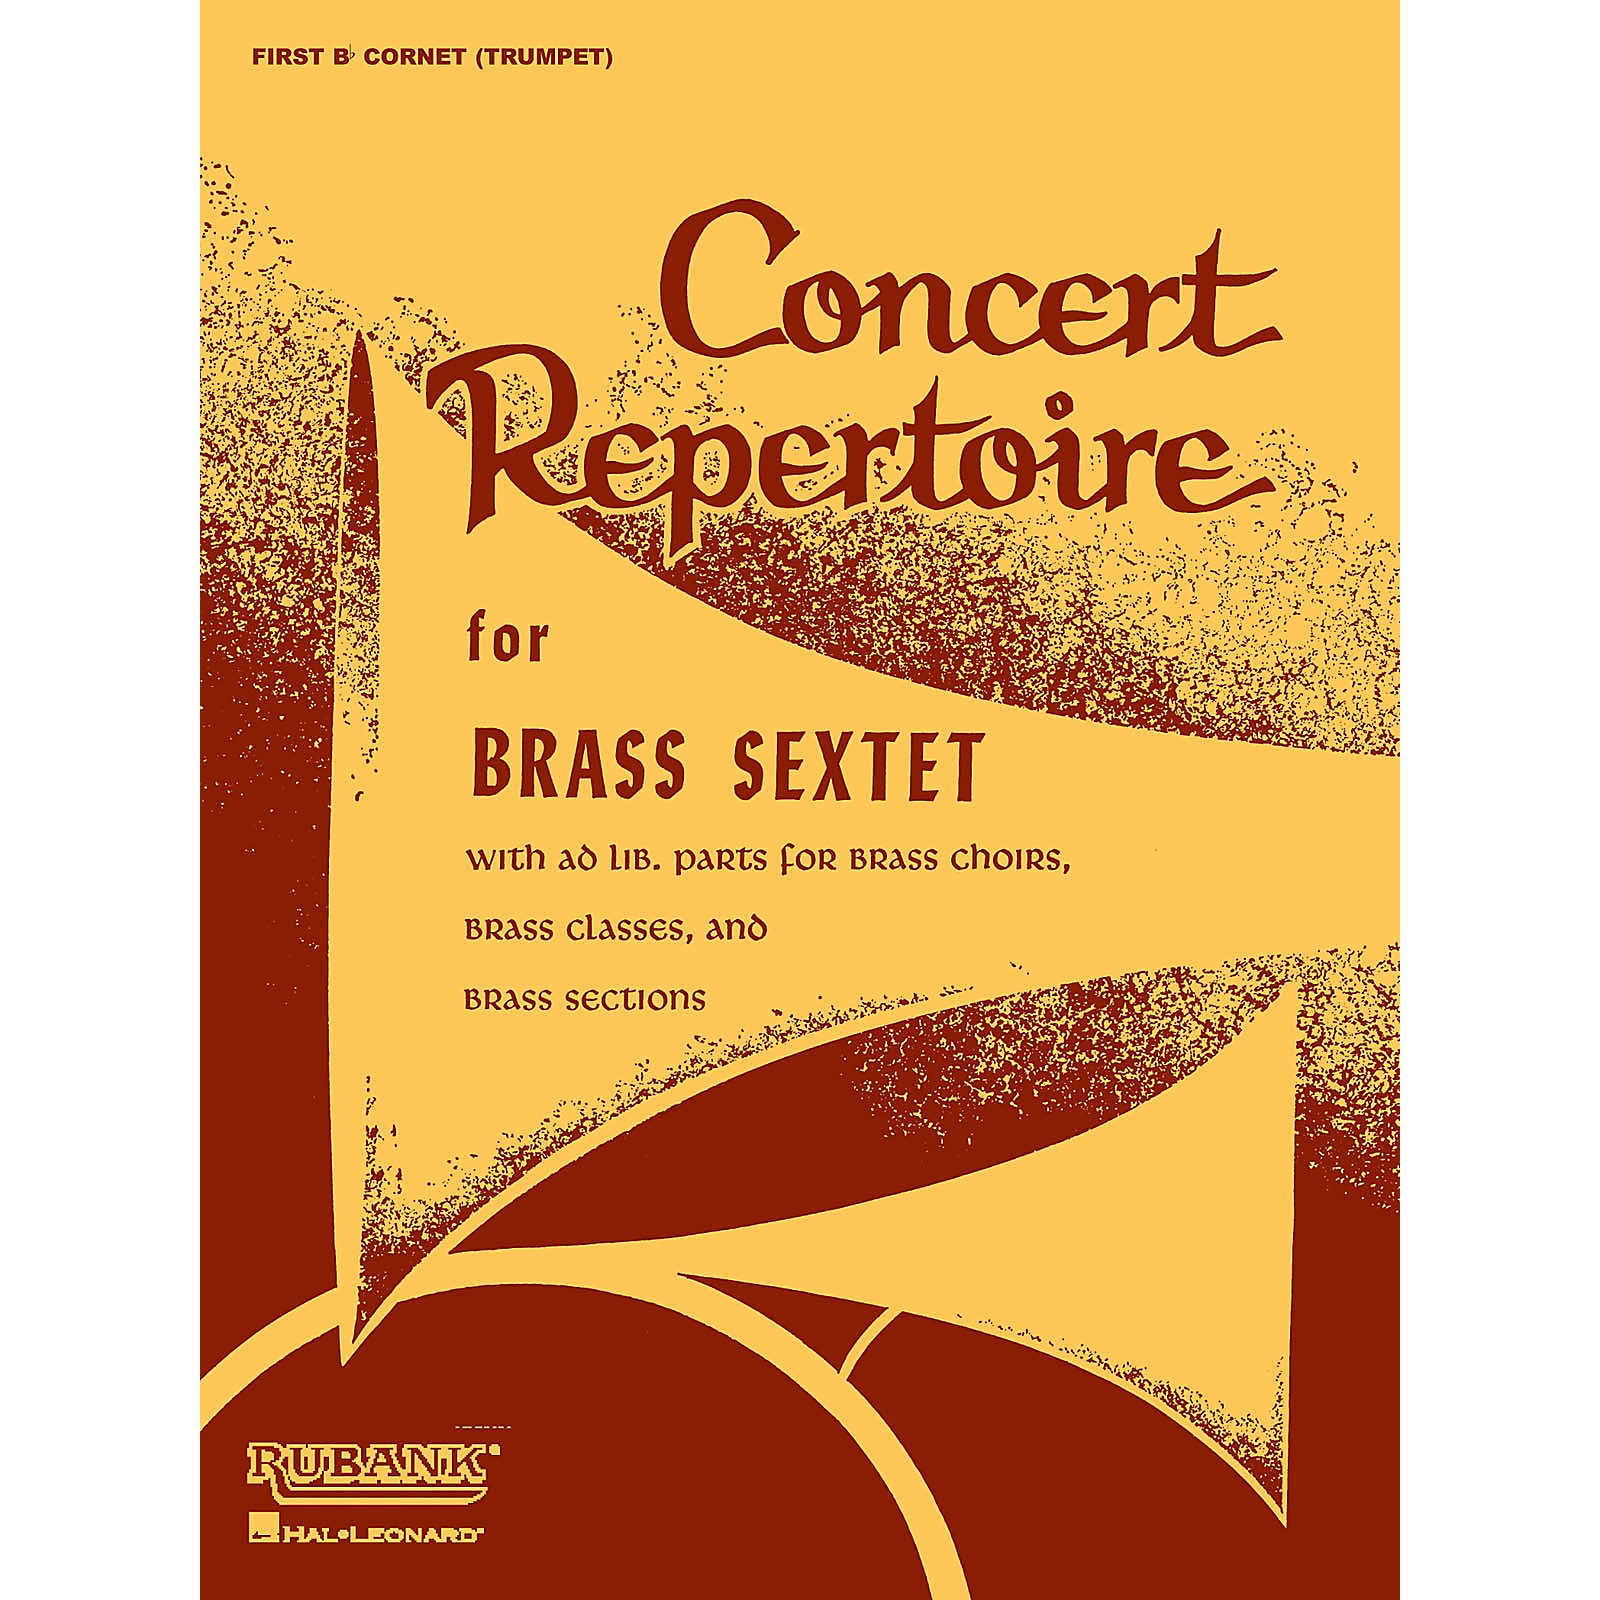 Rubank Publications Concert Repertoire for Brass Sextet (1st Trombone (4th Part)) Ensemble Collection Series